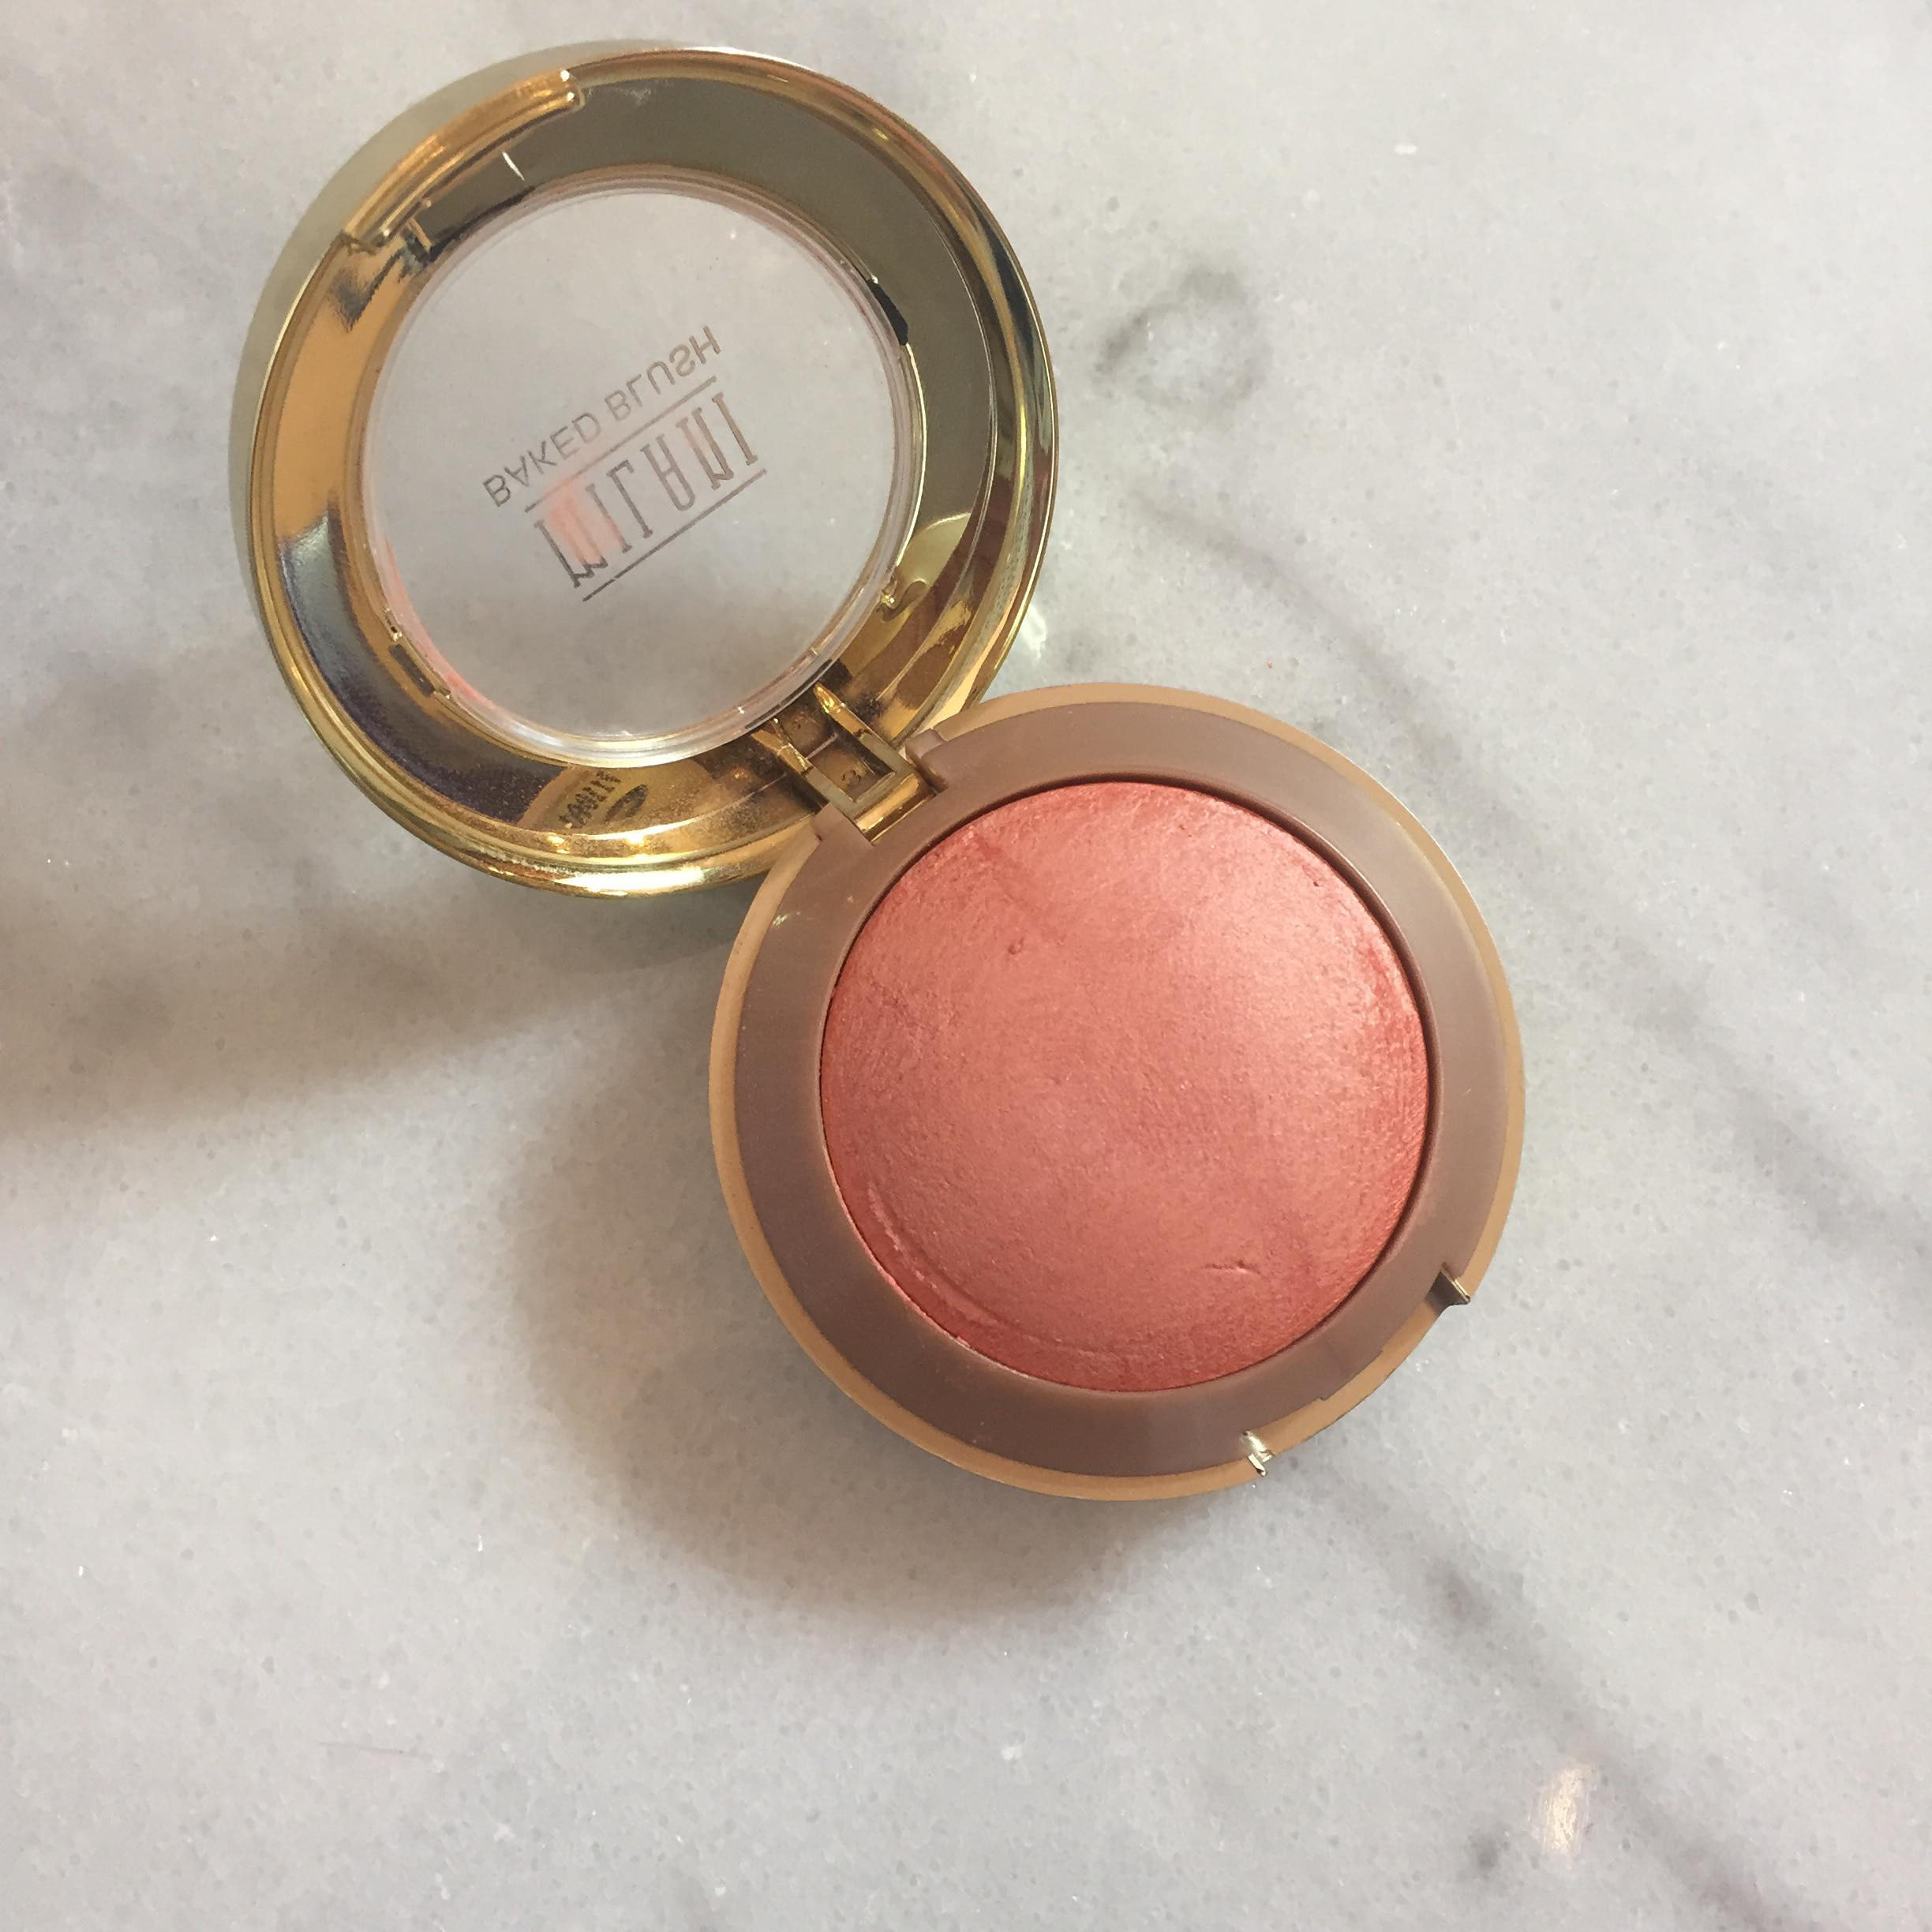 Milani Baked Blush in Luminoso - my favorite spring blushes